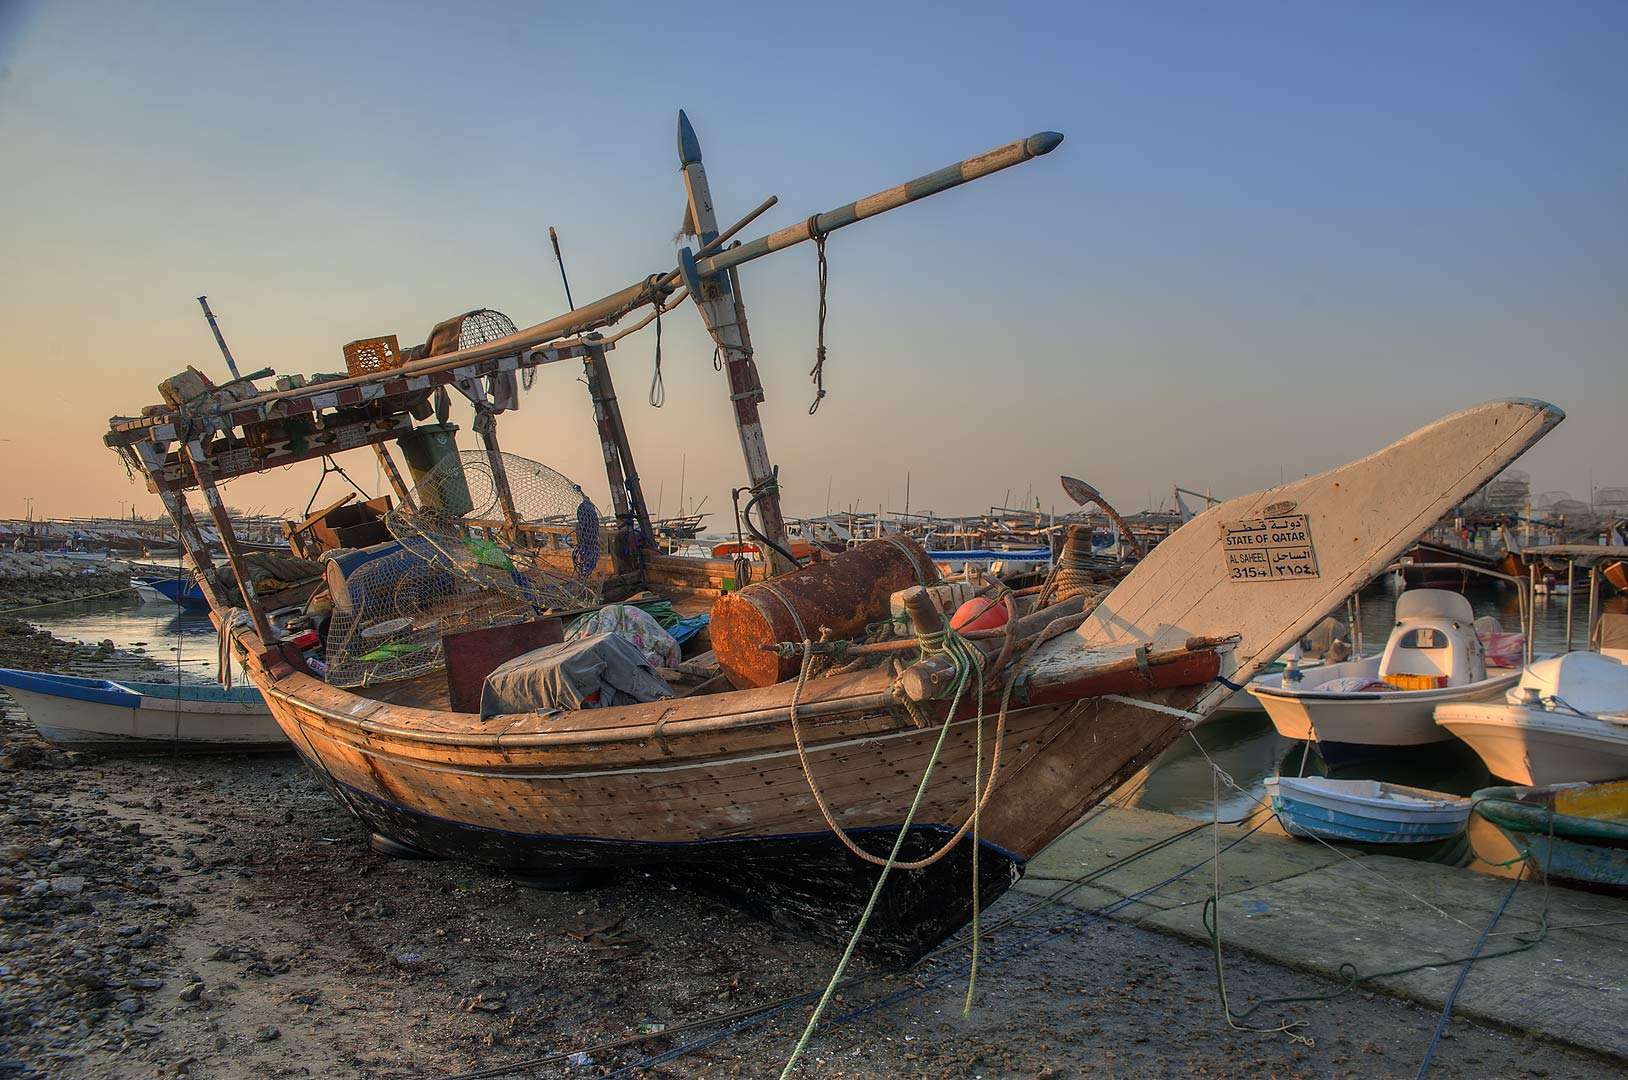 Dhow fishing boat in a port. Al Wakra, Qatar